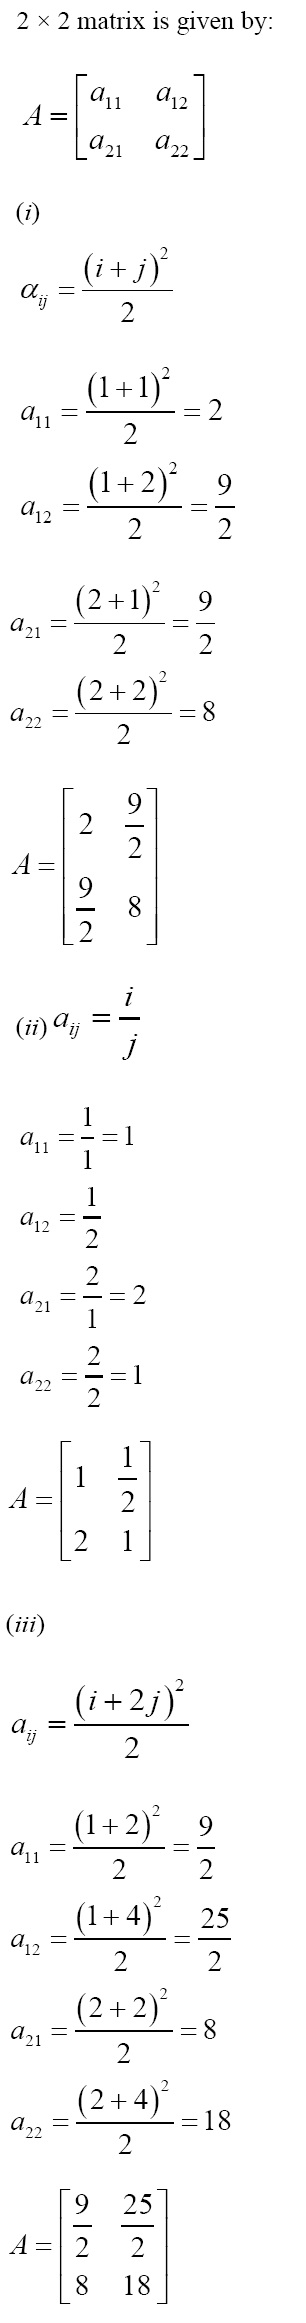 NCERT Solutions for CBSE Class 12 Mathematics ‒ Chapter 3: Matrices [Exercise 3.1; solution 4]